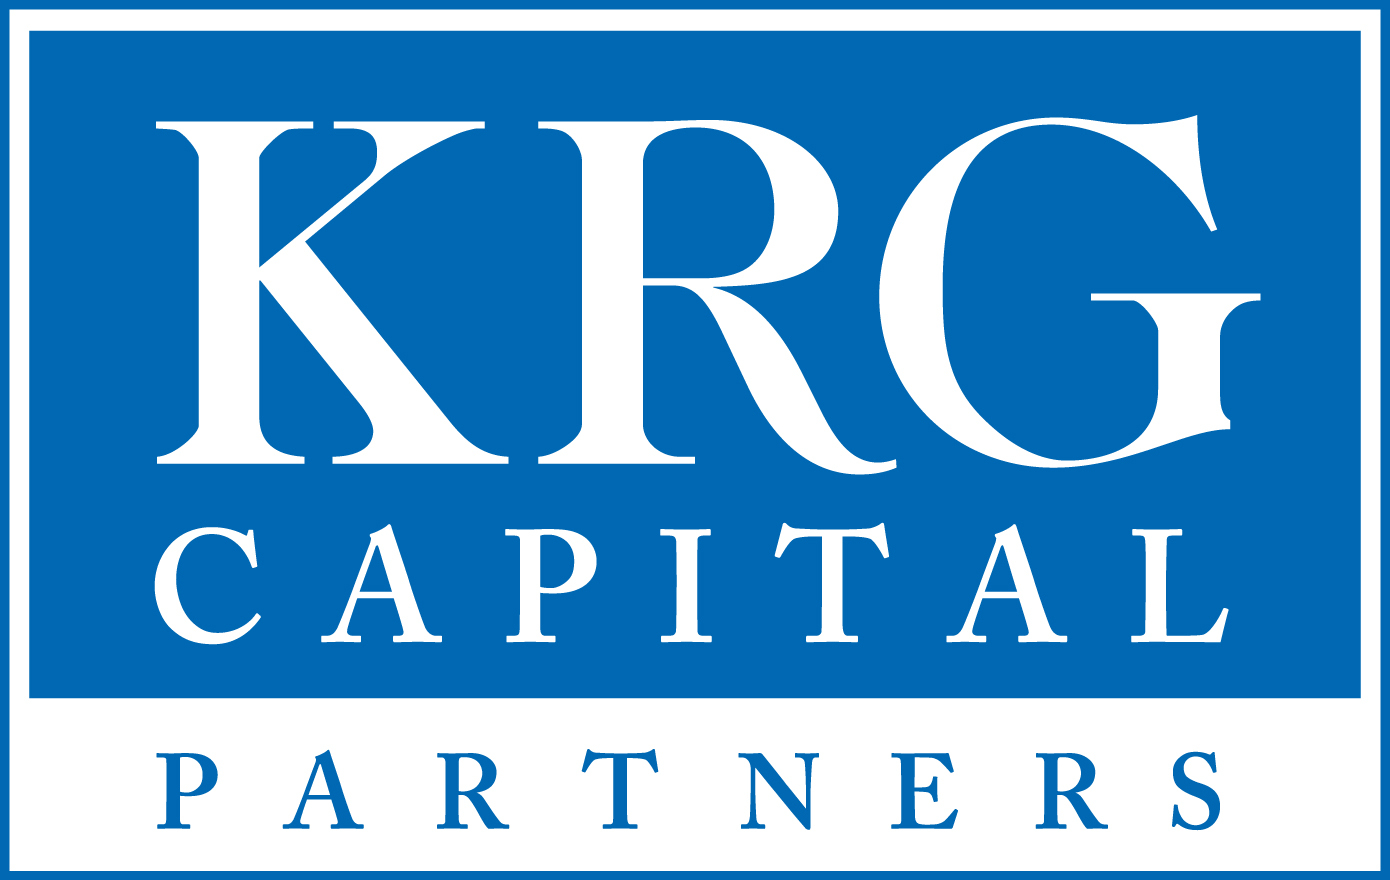 Krg Capital Partners Completes Sale Of Focus Group Holding. Vanille Patisserie Chicago New Car In Toyota. Regent Care Oakwell Farms B J Medical College. Cash Management Companies Nyc Pain Management. Hotels Hermanus South Africa. Ssl Security Certificates Attorney In Seattle. Whole Life Insurance Cost Call Routing System. Philosophy Degree Courses Invest Money Online. Where Can I Build A Website What Is A Hvac